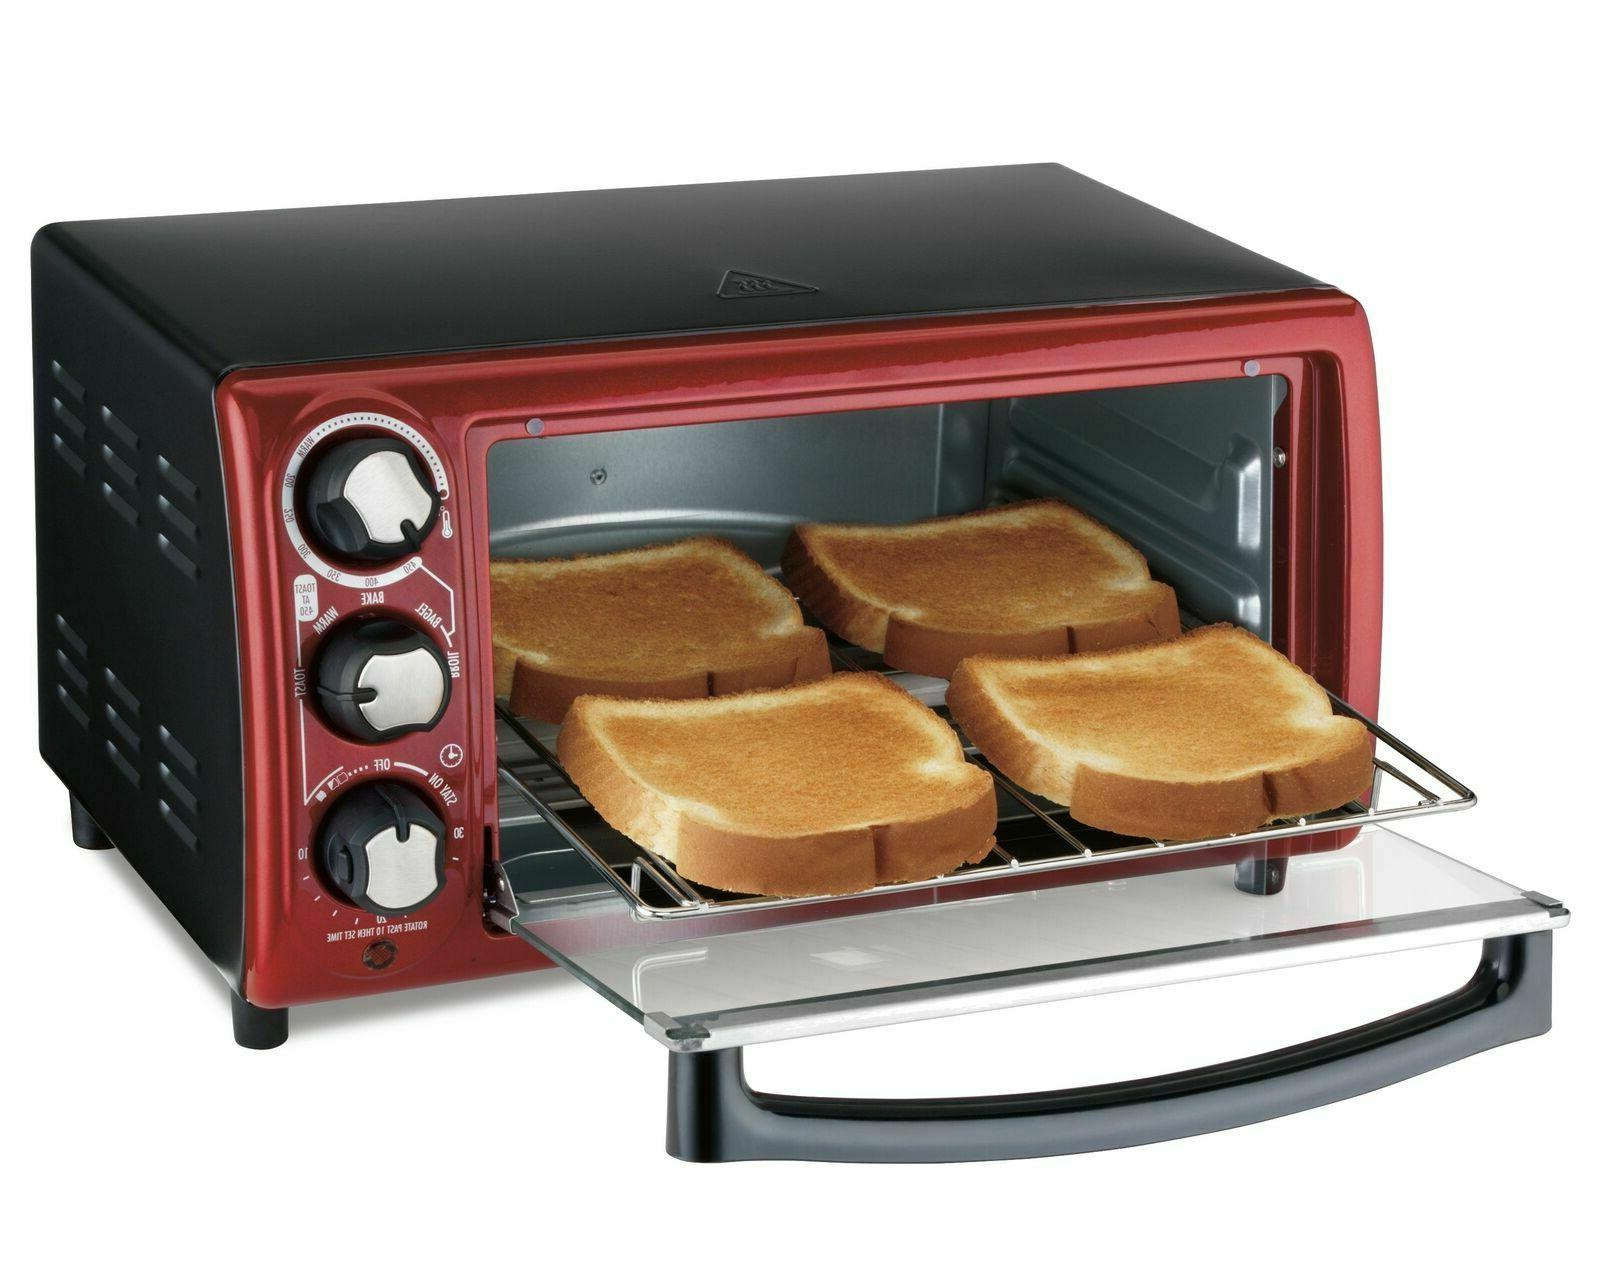 toaster oven red 4 slice capacity model